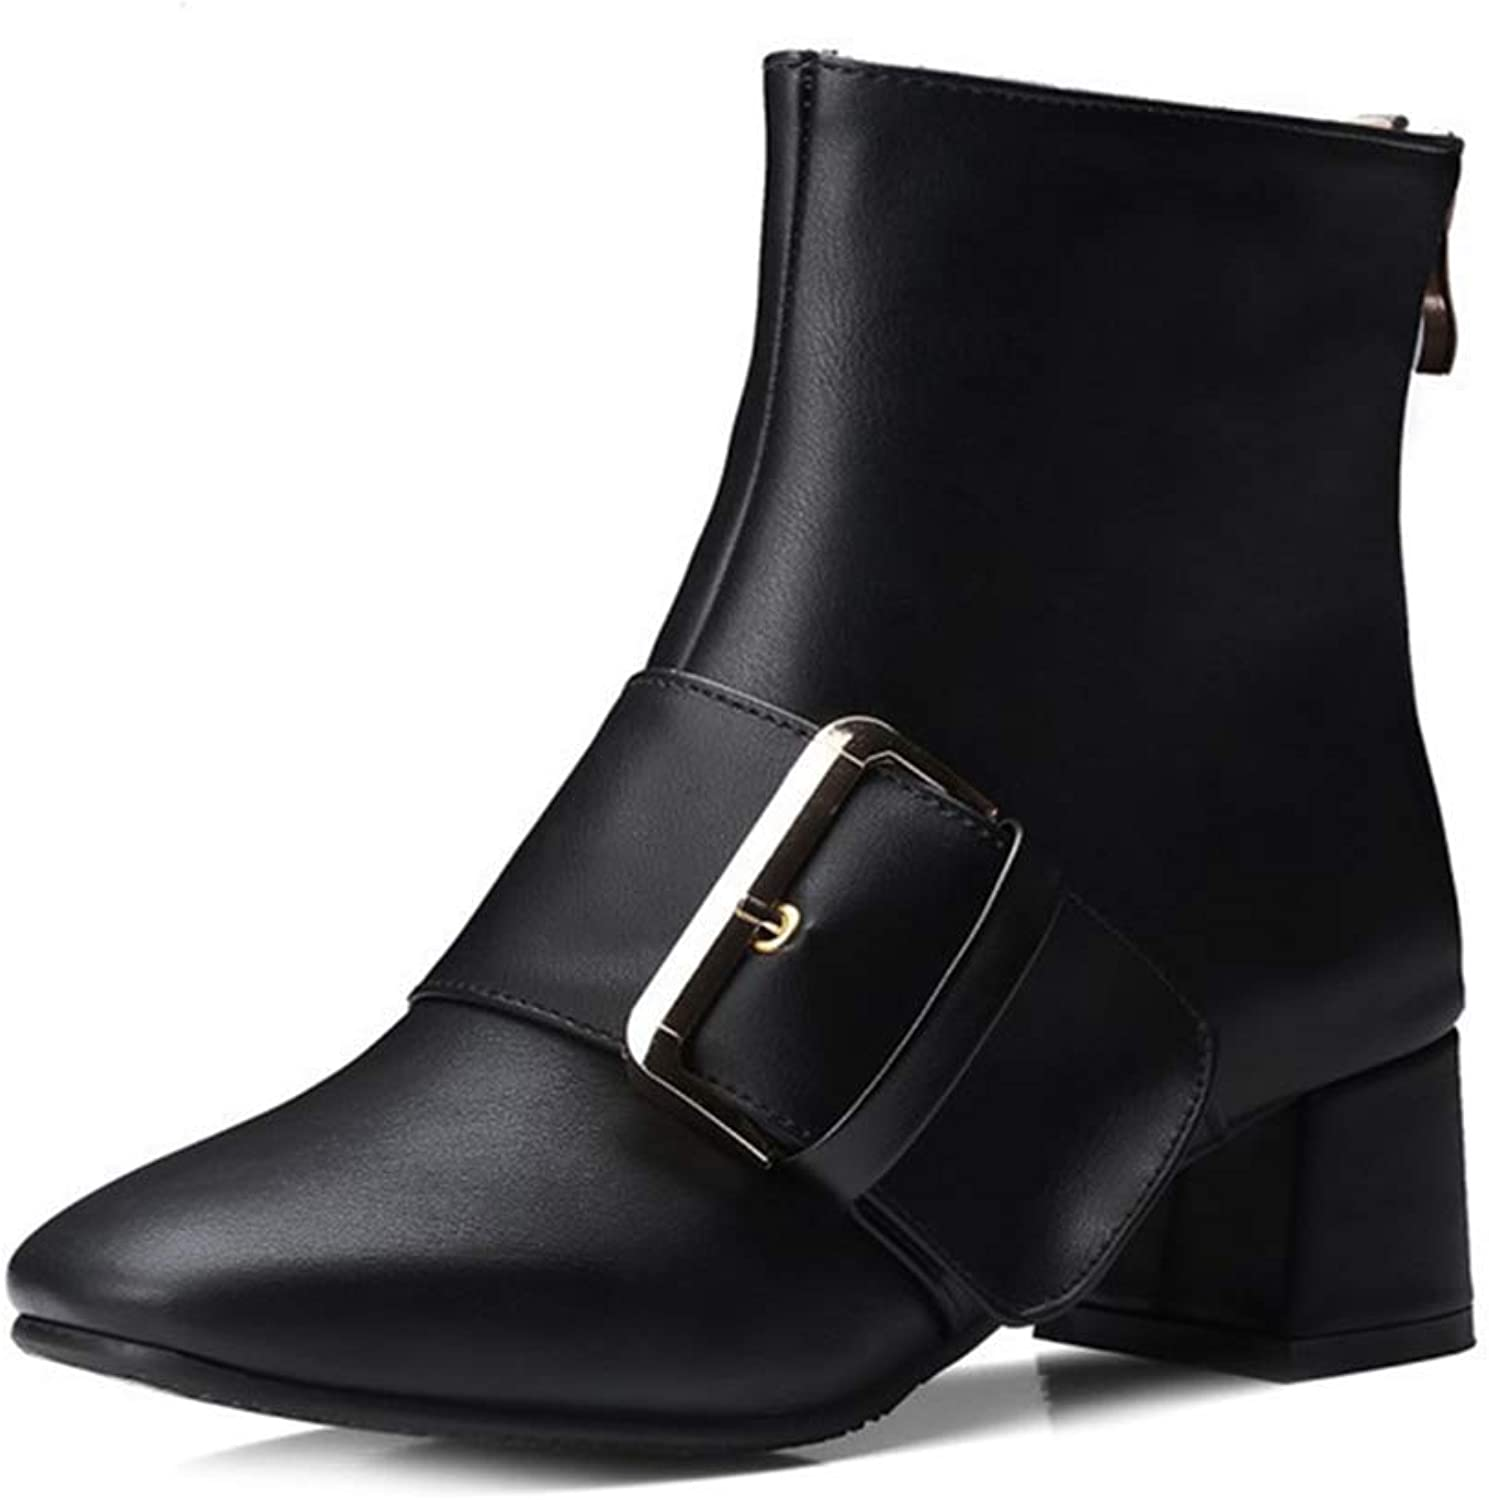 Beautiful - Fashion Women's Classic Western Buckle Ankle Boots Platform Round Toe Mid Heel Studded Riding Short Booties